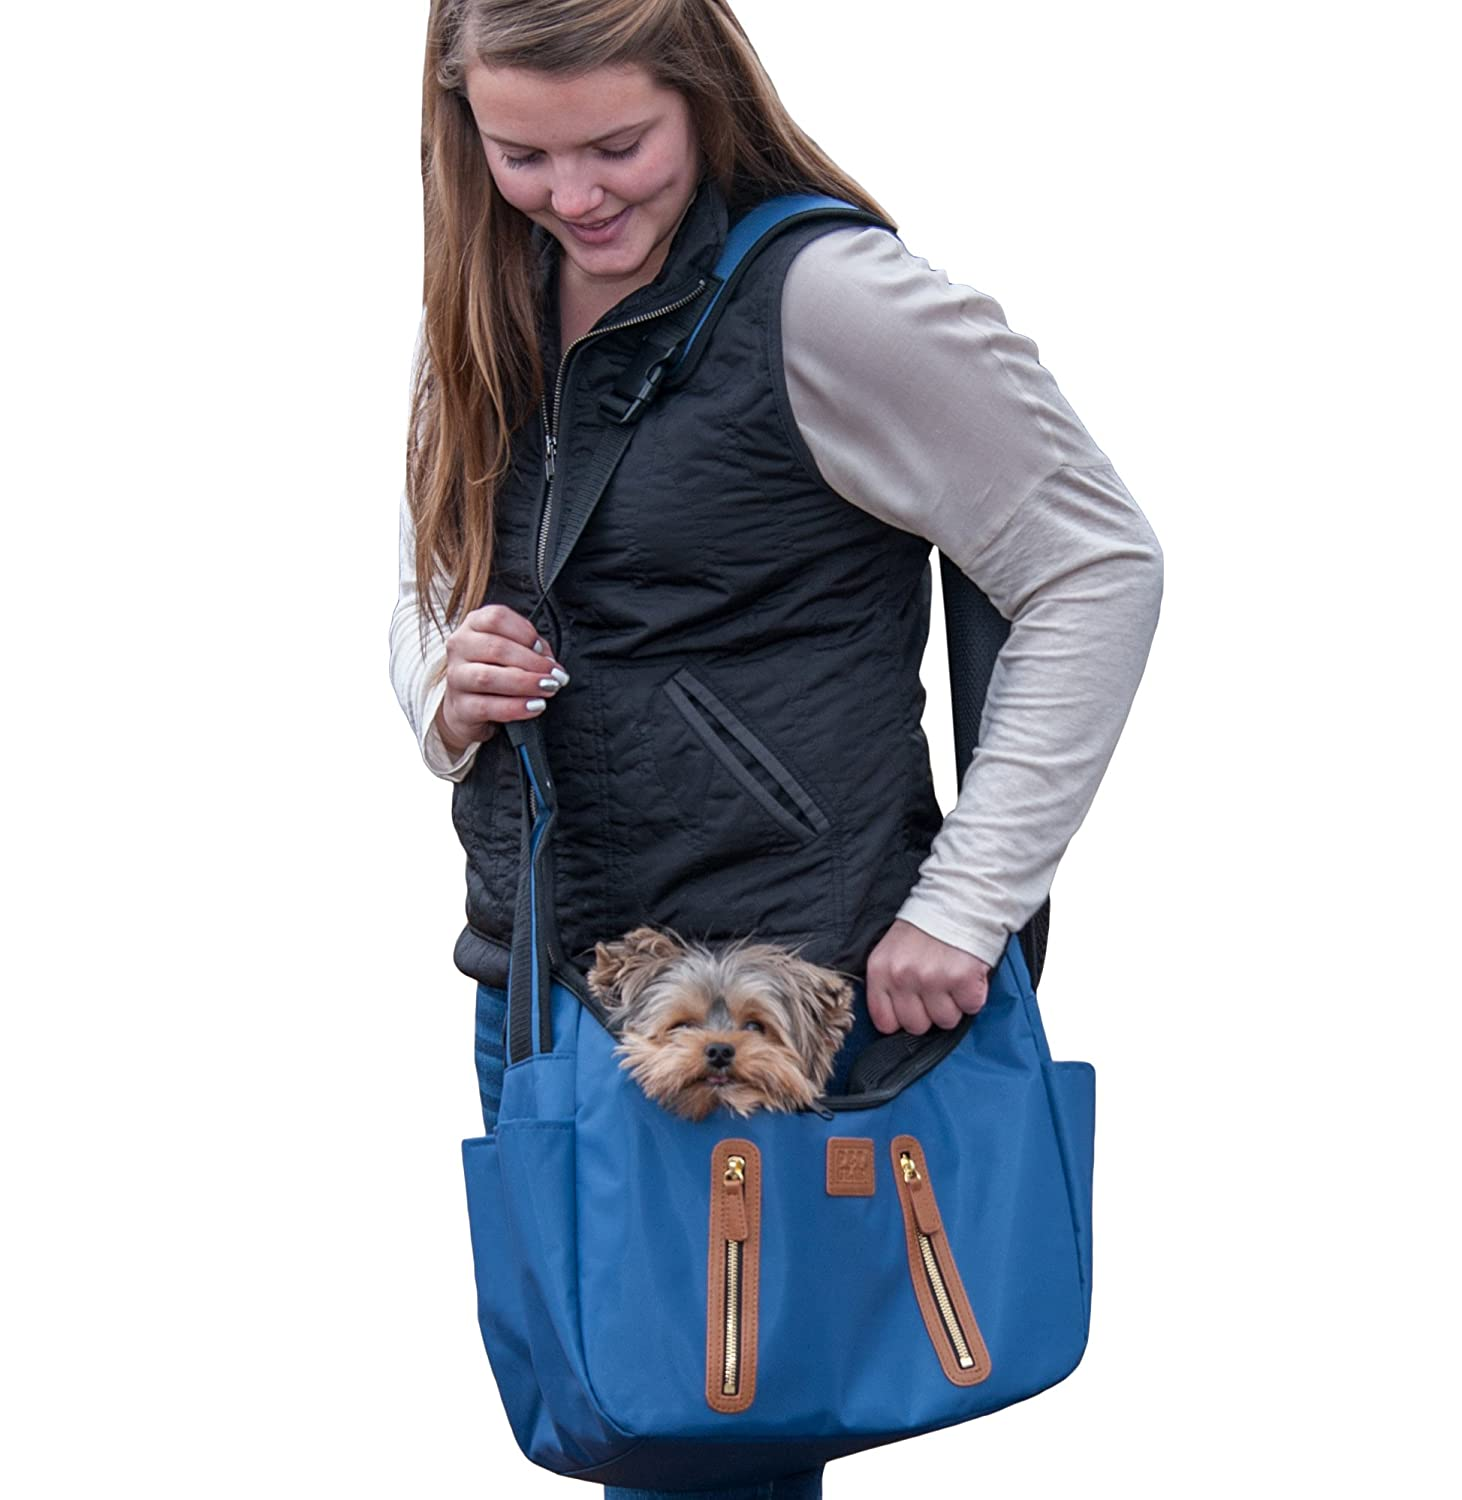 Navy Pet Gear R&R Sling Carrier for Cats Dogs, Storage Pockets, Removable Washable Liner, Zippered Top with Mesh Window